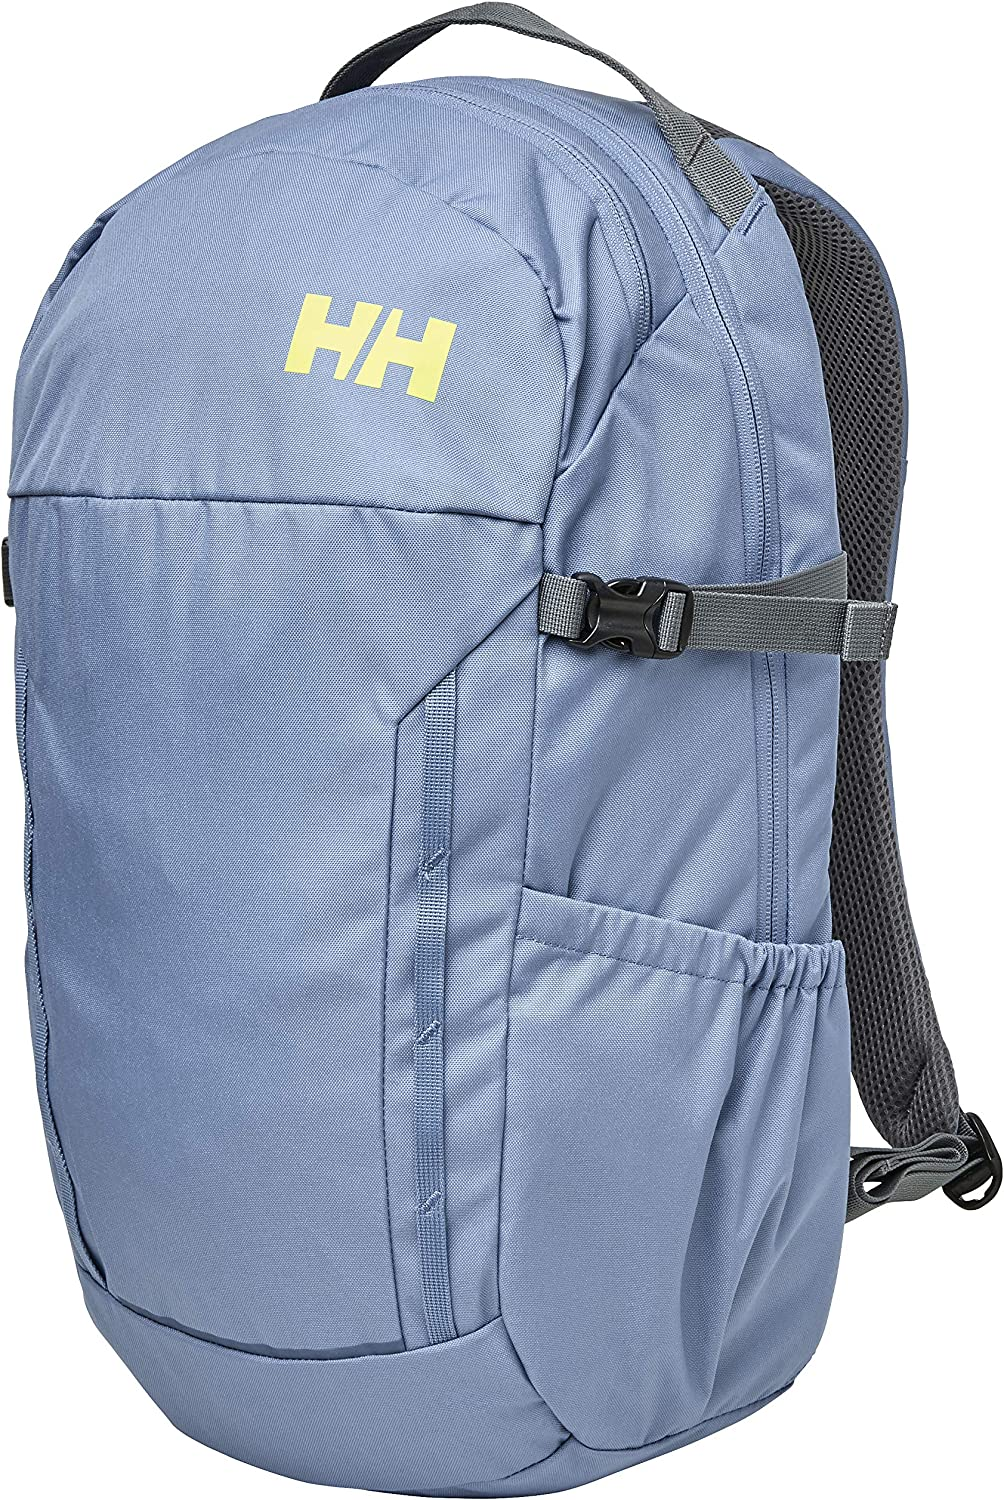 förfader Spindel Ord  Amazon.com: Helly Hansen Unisex Loke 25L Day Hike Backpack, 625 Blue Fog,  One Size: Clothing